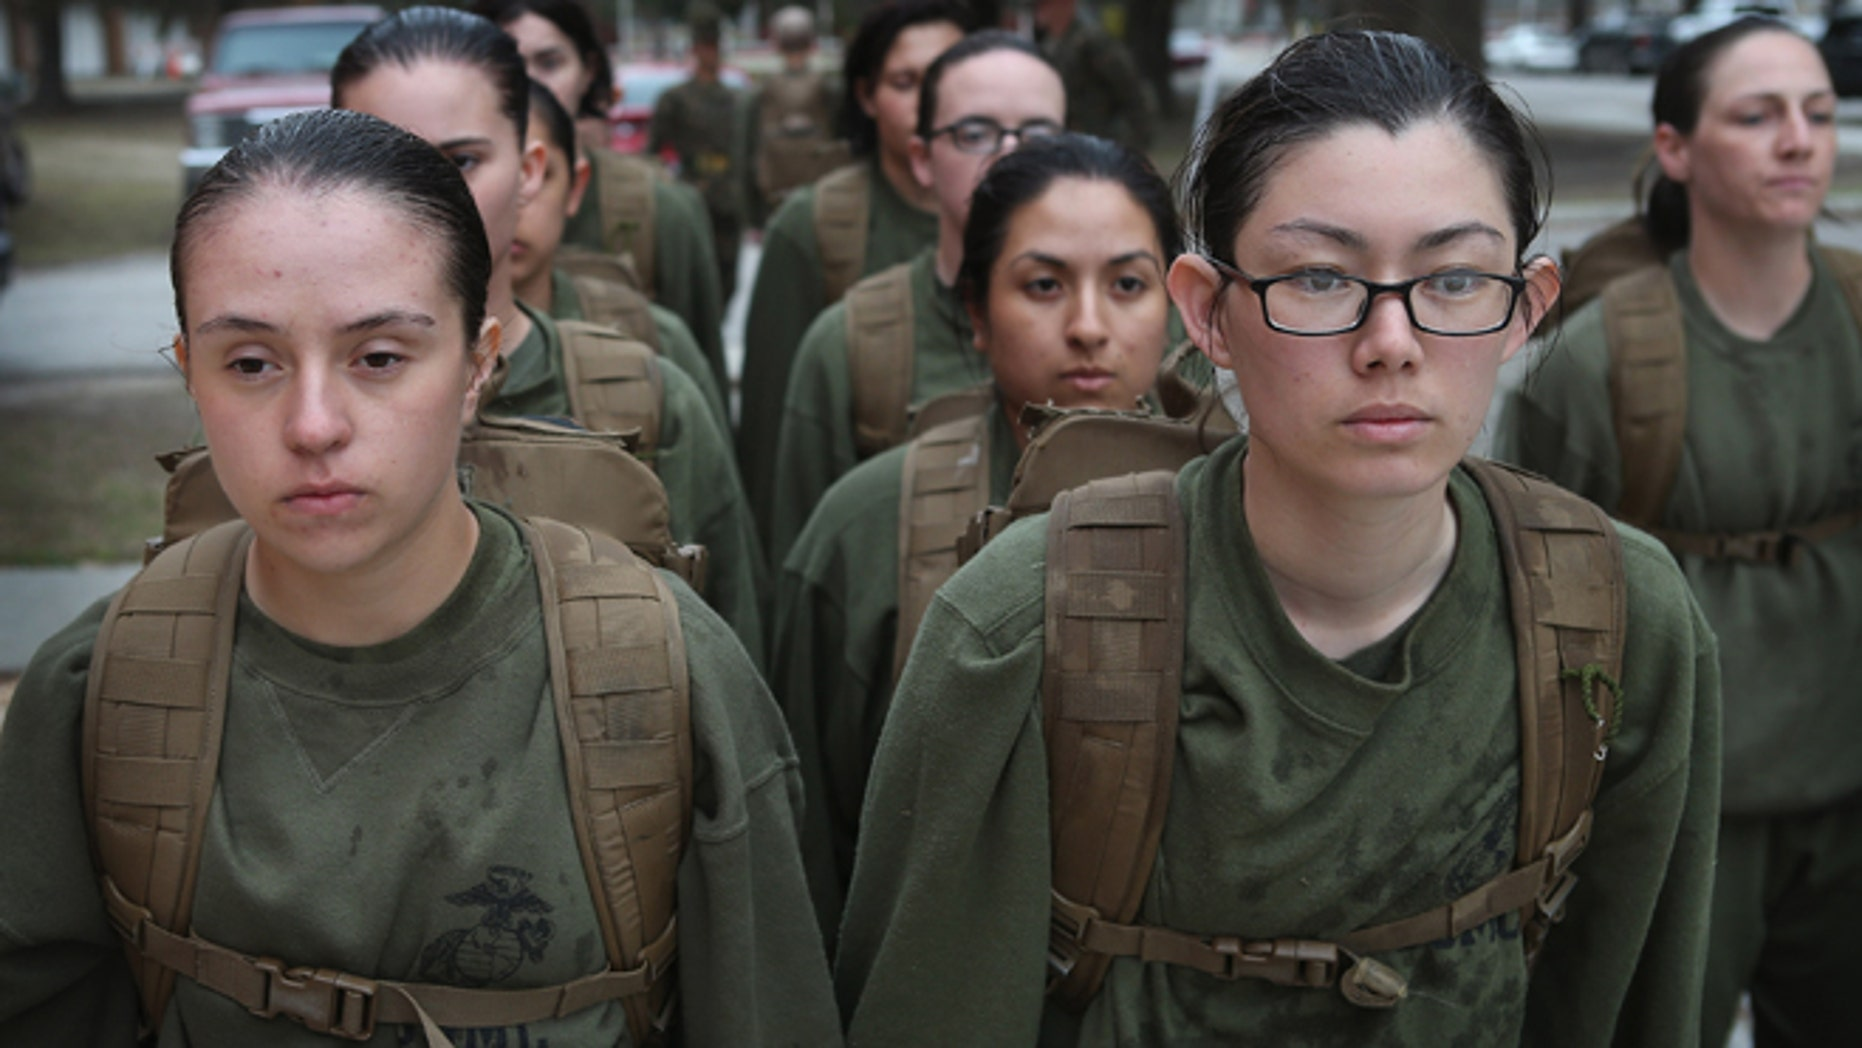 PARRIS ISLAND, SC - FEBRUARY 25:  Female Marine recruits stand in formation during boot camp February 25, 2013 at MCRD Parris Island, South Carolina. All female enlisted Marines and male Marines who were living east of the Mississippi River when they were recruited attend boot camp at Parris Island. About six percent of enlisted Marines are female.  (Photo by Scott Olson/Getty Images)